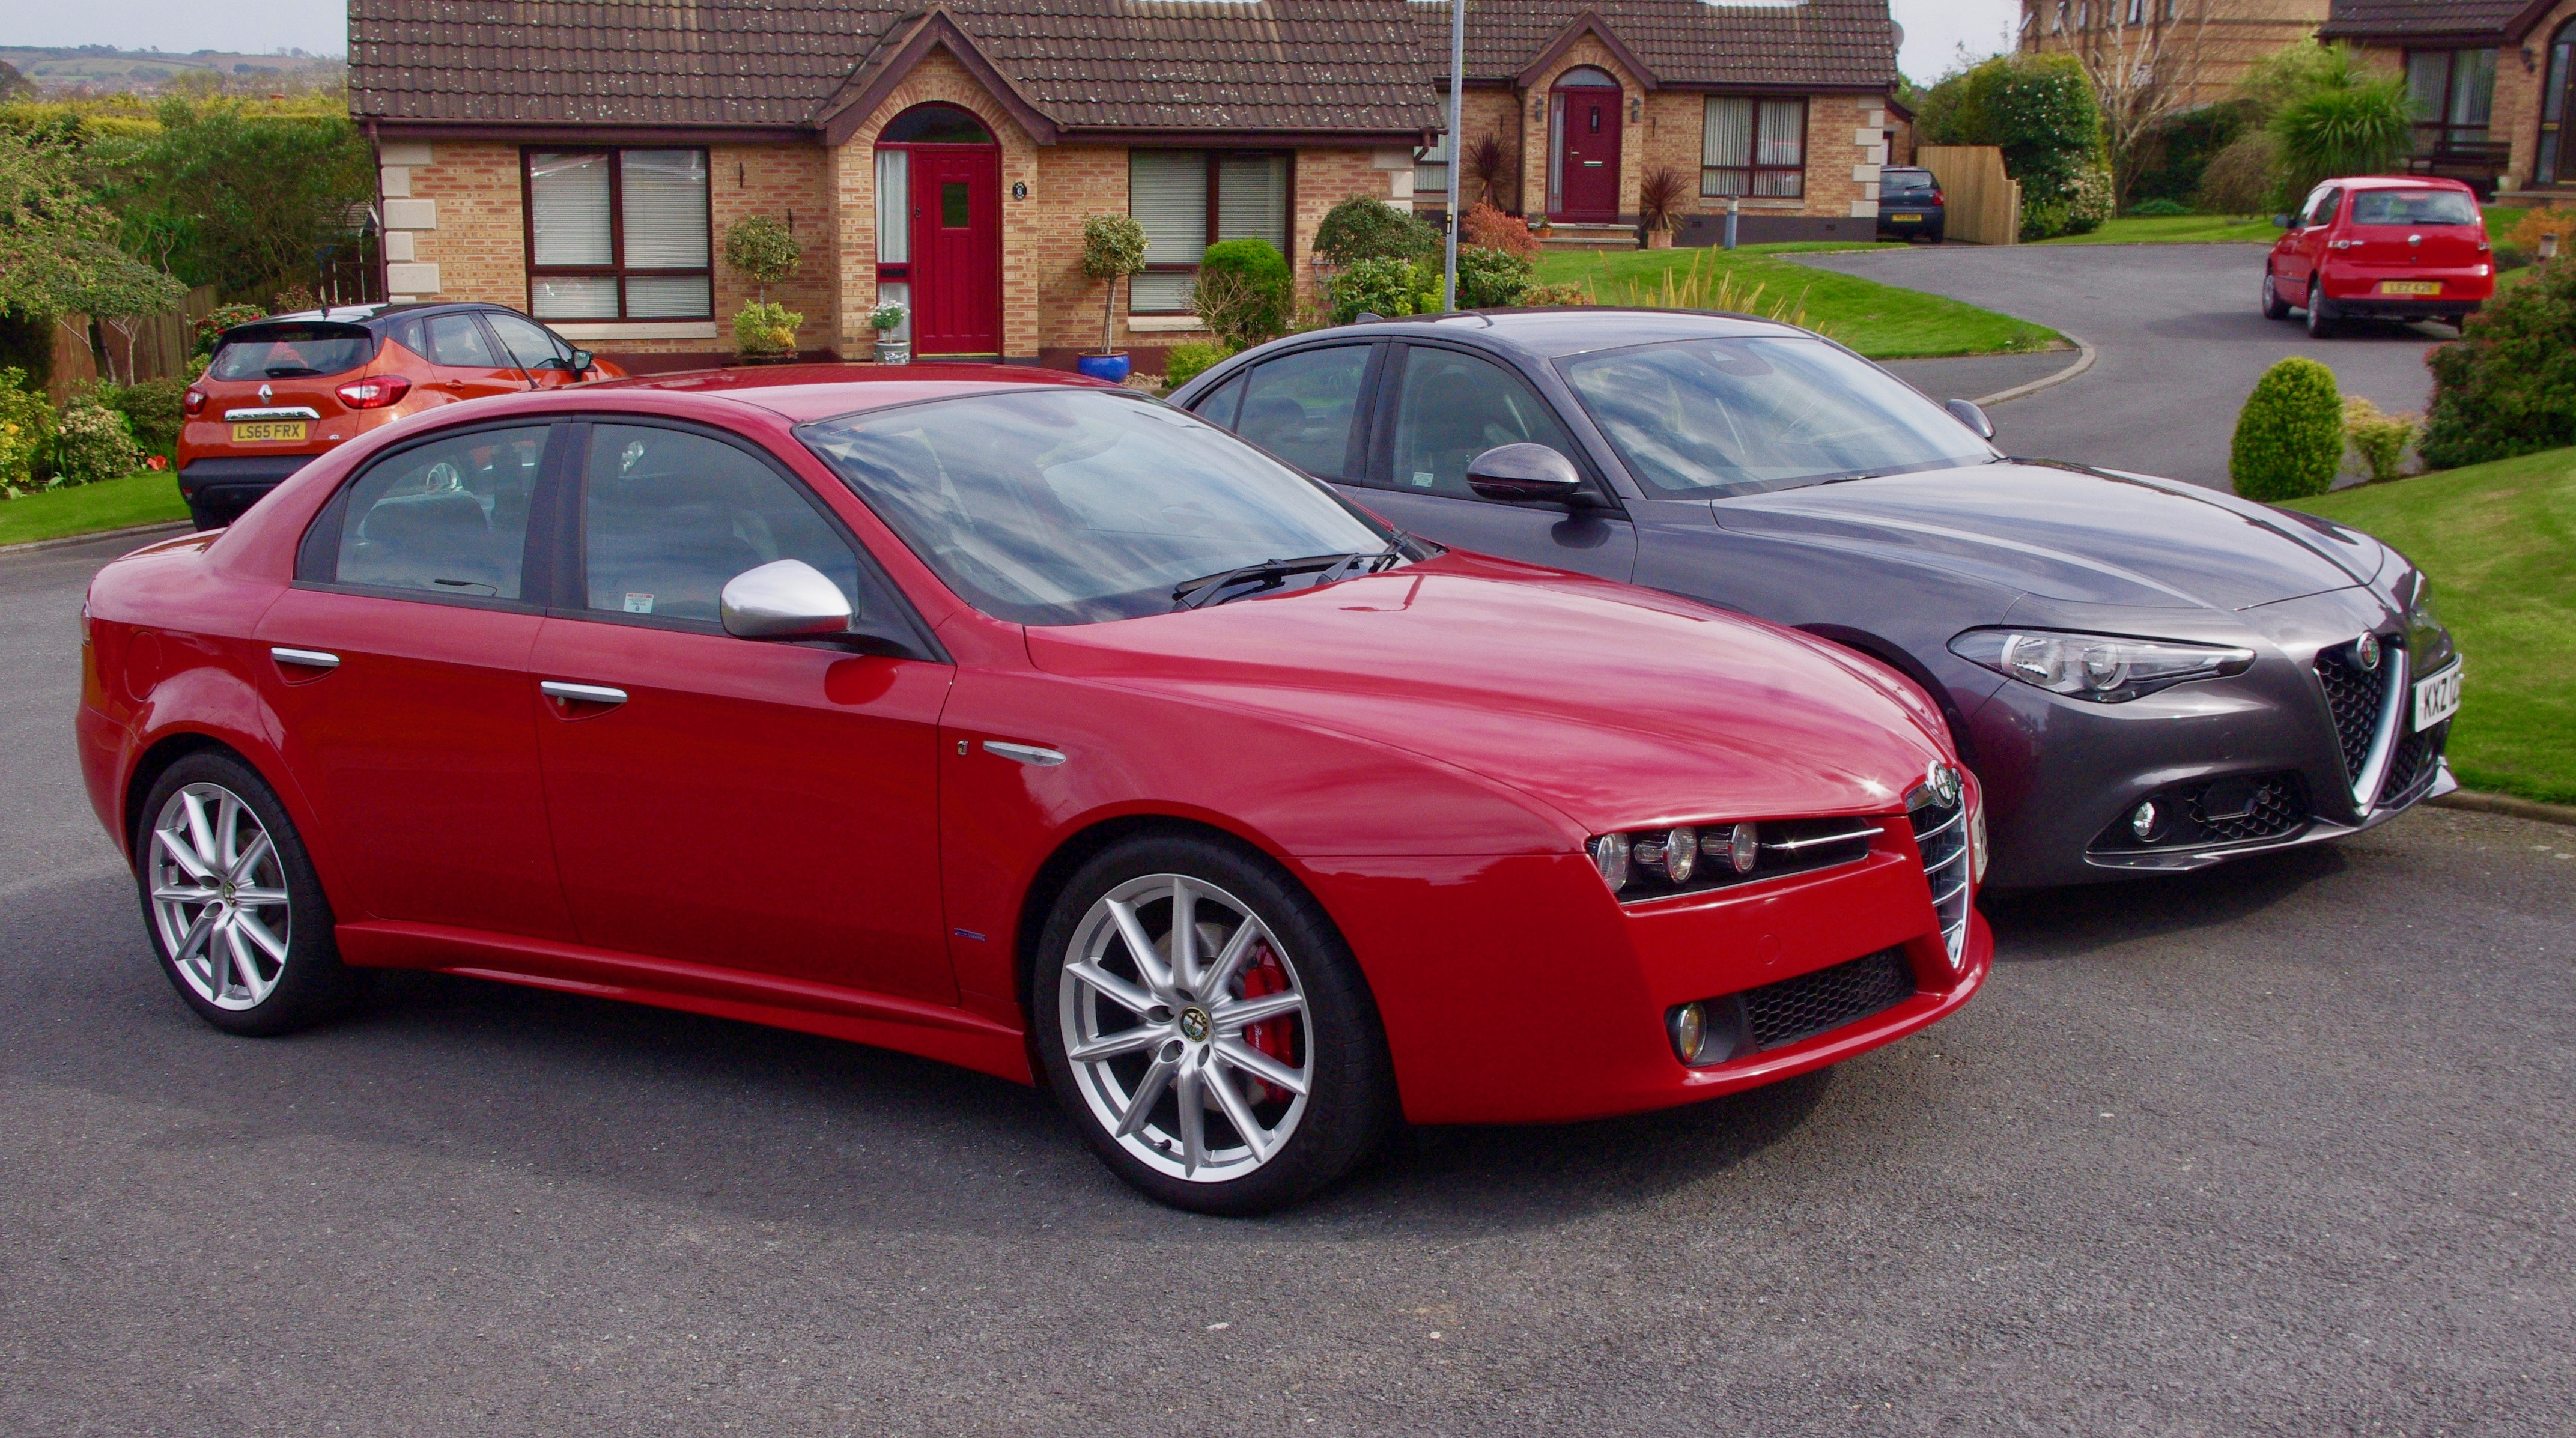 alfa 159 vs giulia northern ireland italian motor club. Black Bedroom Furniture Sets. Home Design Ideas